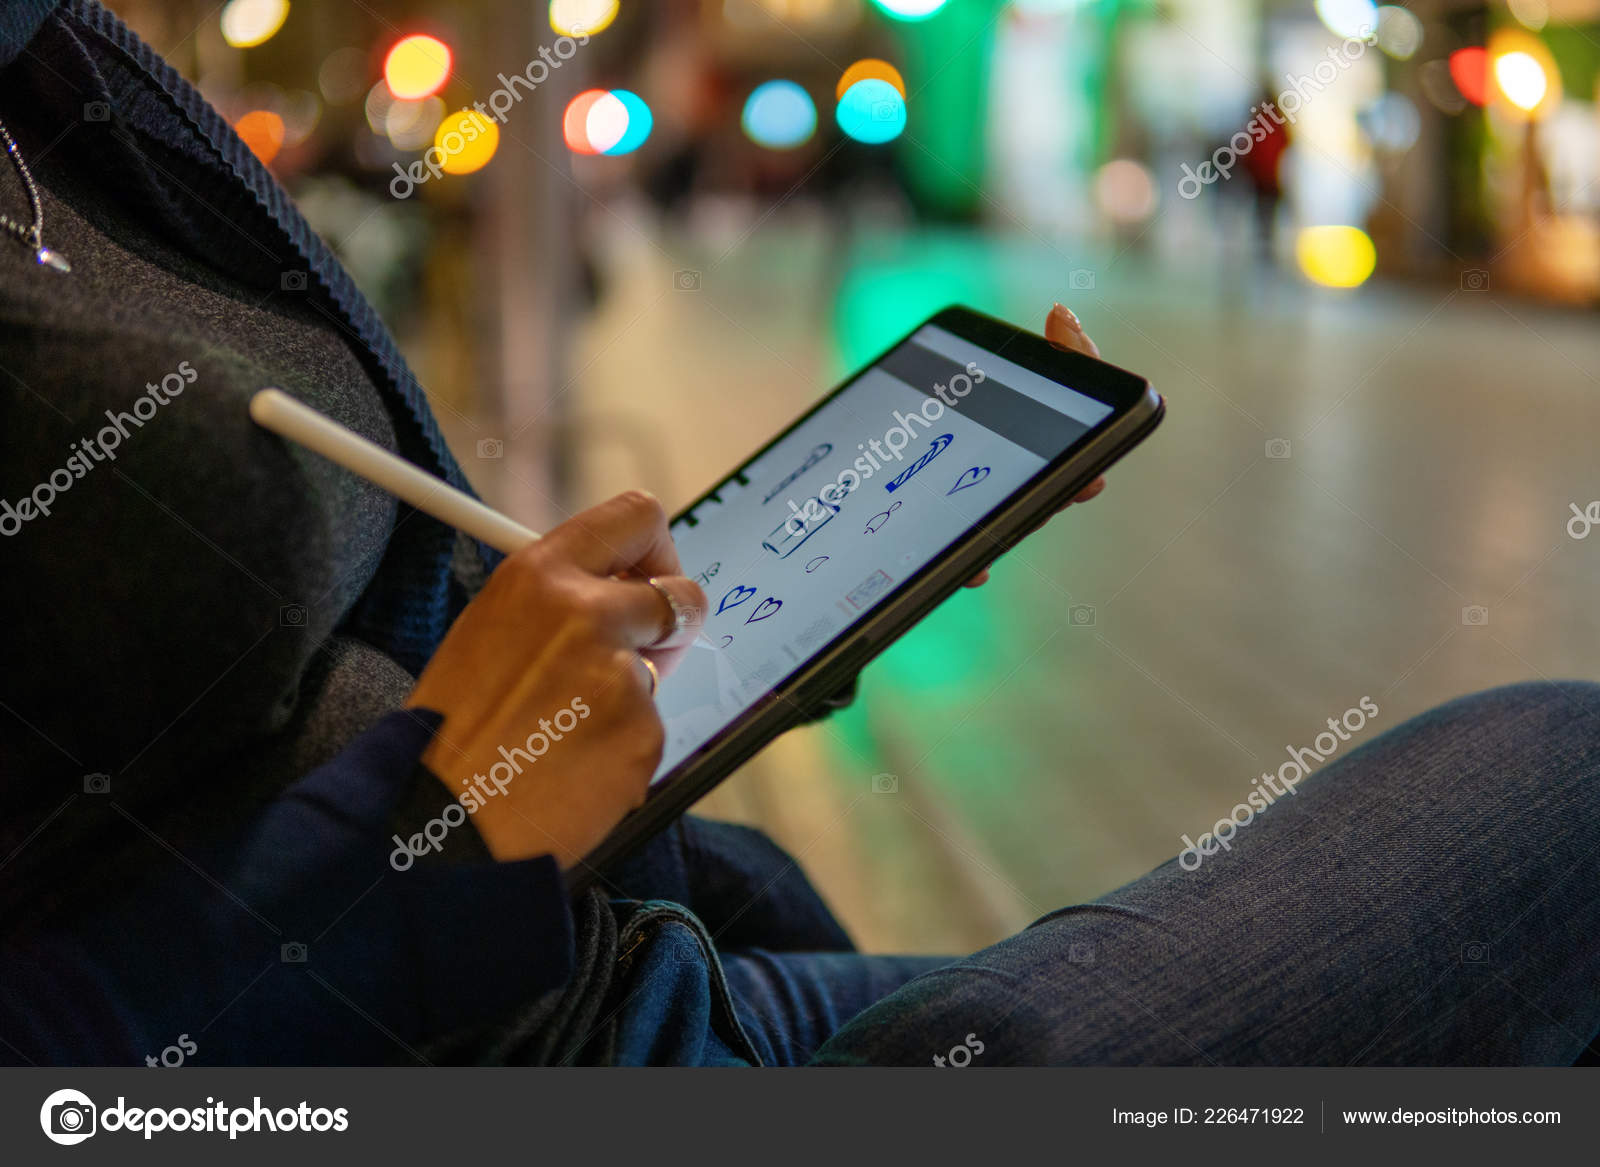 Woman Drawing On Digital Tablet With Stylus Pencil Stock Photo